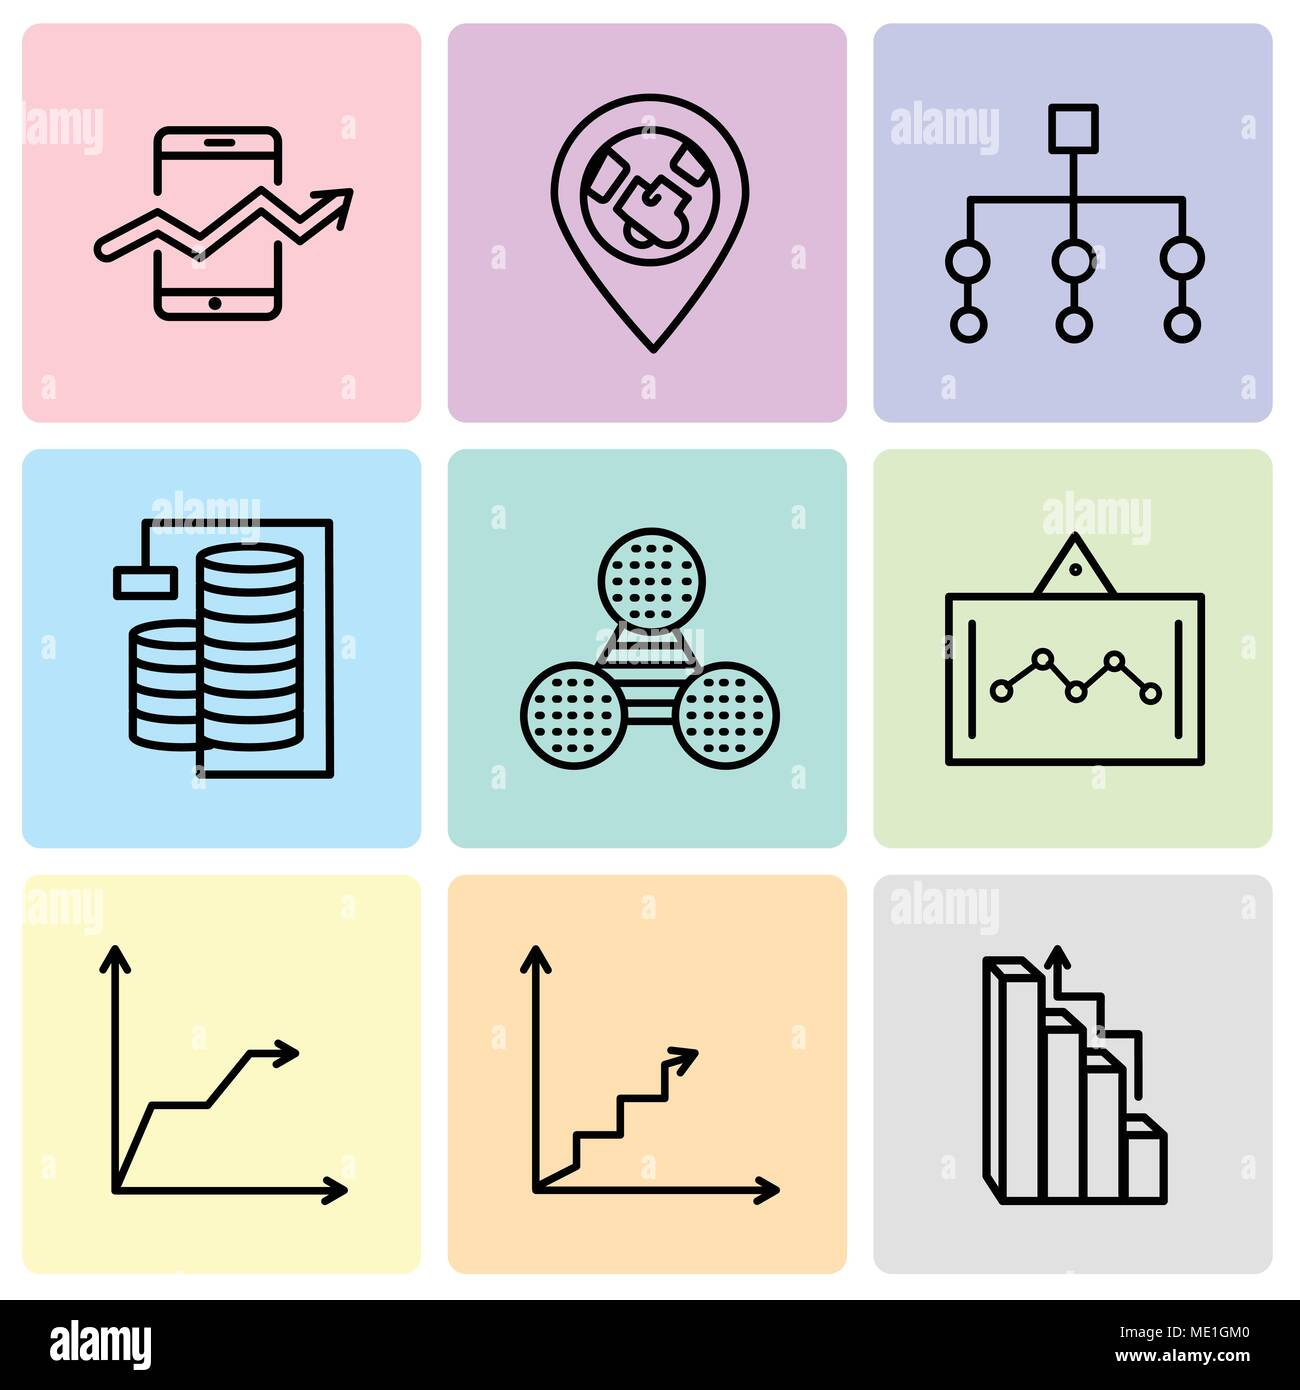 Set Of 9 simple editable icons such as Targeting, Data analytics ascending, Triangular pyramid, Data analytics screen, Pie graphic comparison, Databas - Stock Image